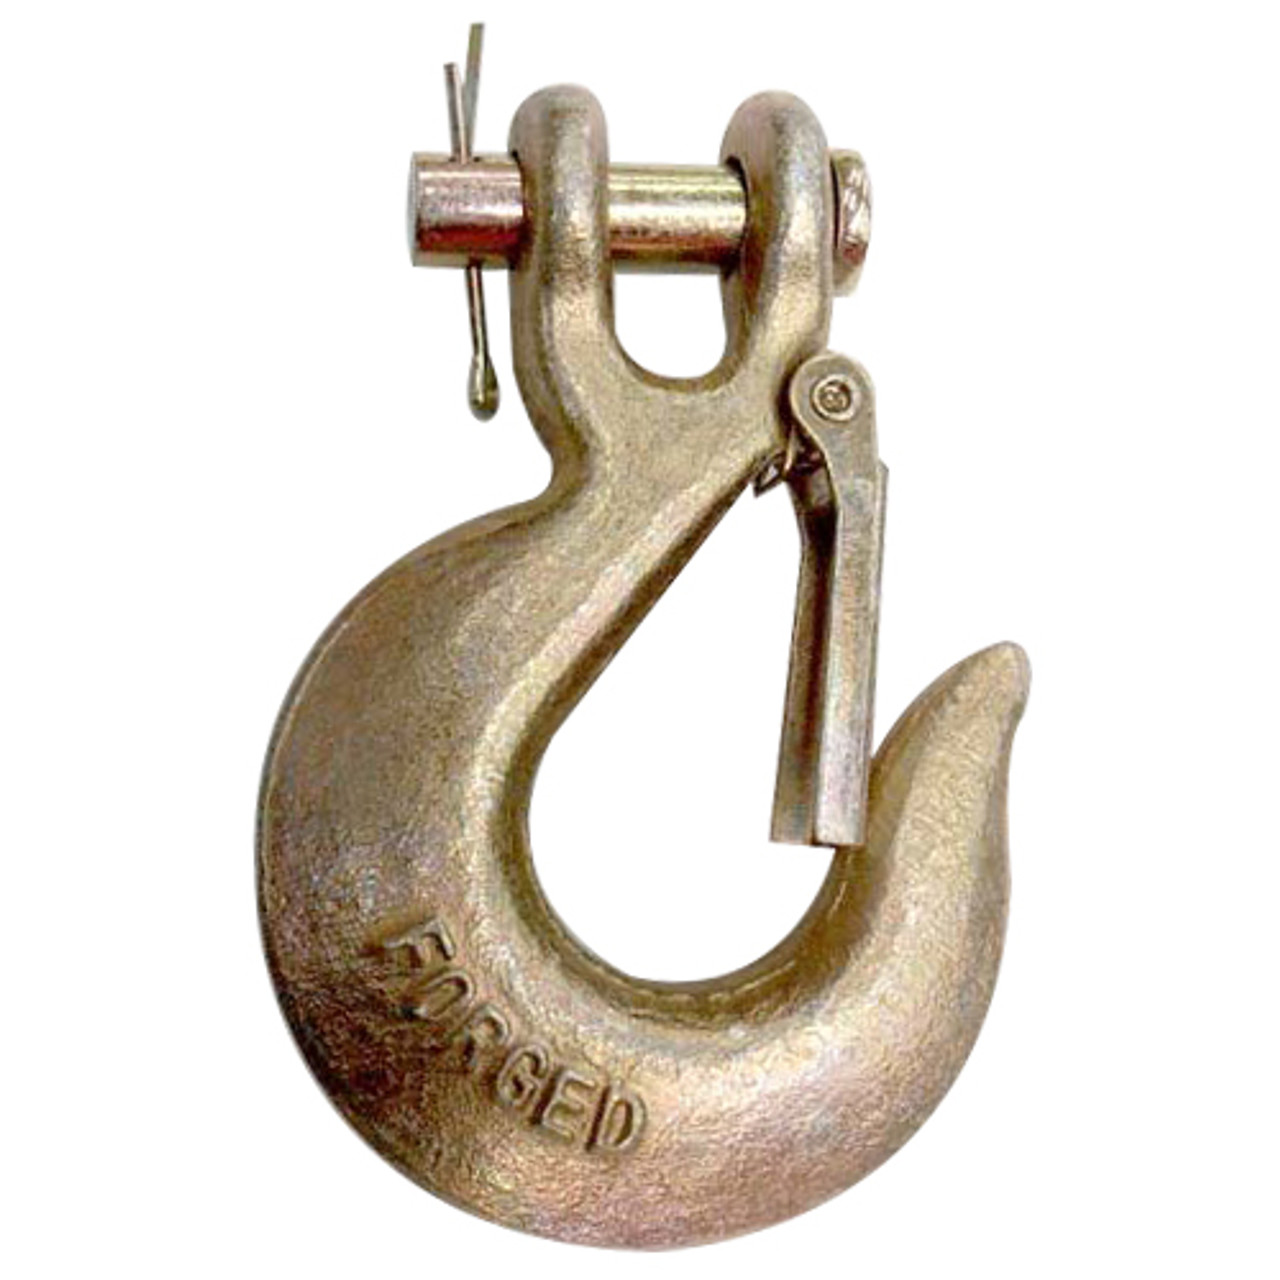 Clevis Slip Hook G70 13MM Lc 9000 Kgs